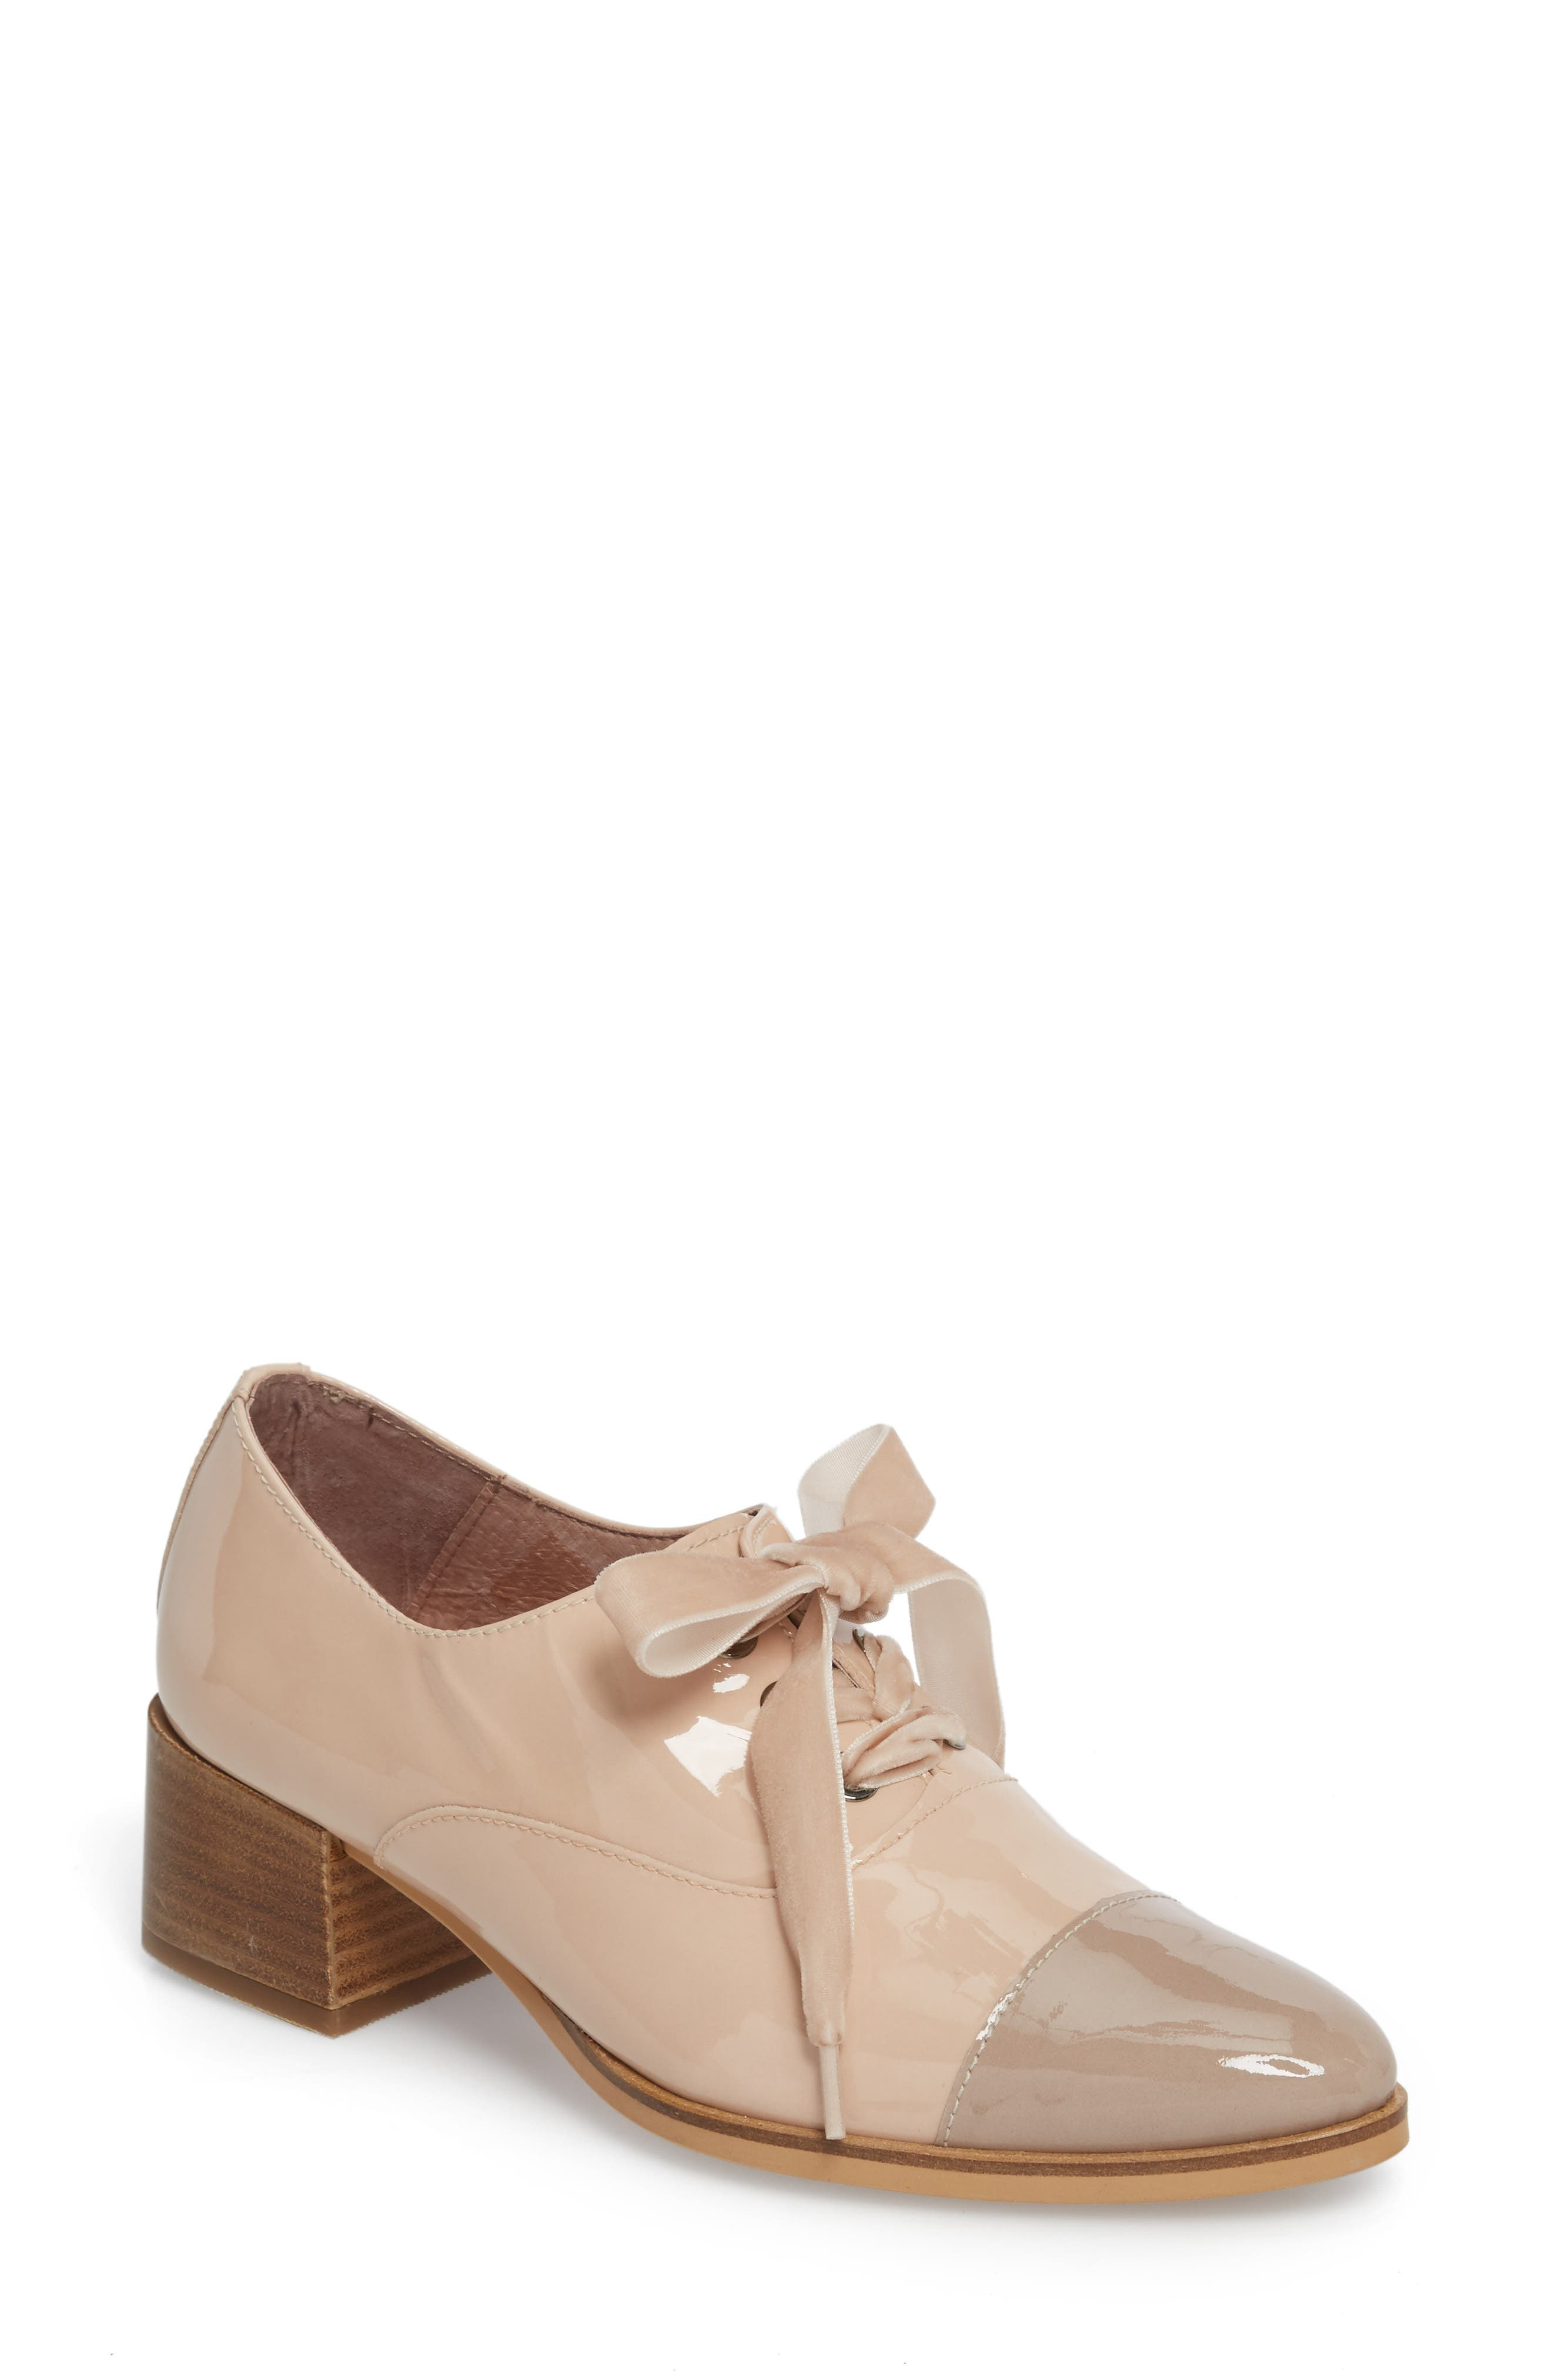 Lace-Up Oxford Pump,                         Main,                         color, TAUPE/ PALO PATENT LEATHER